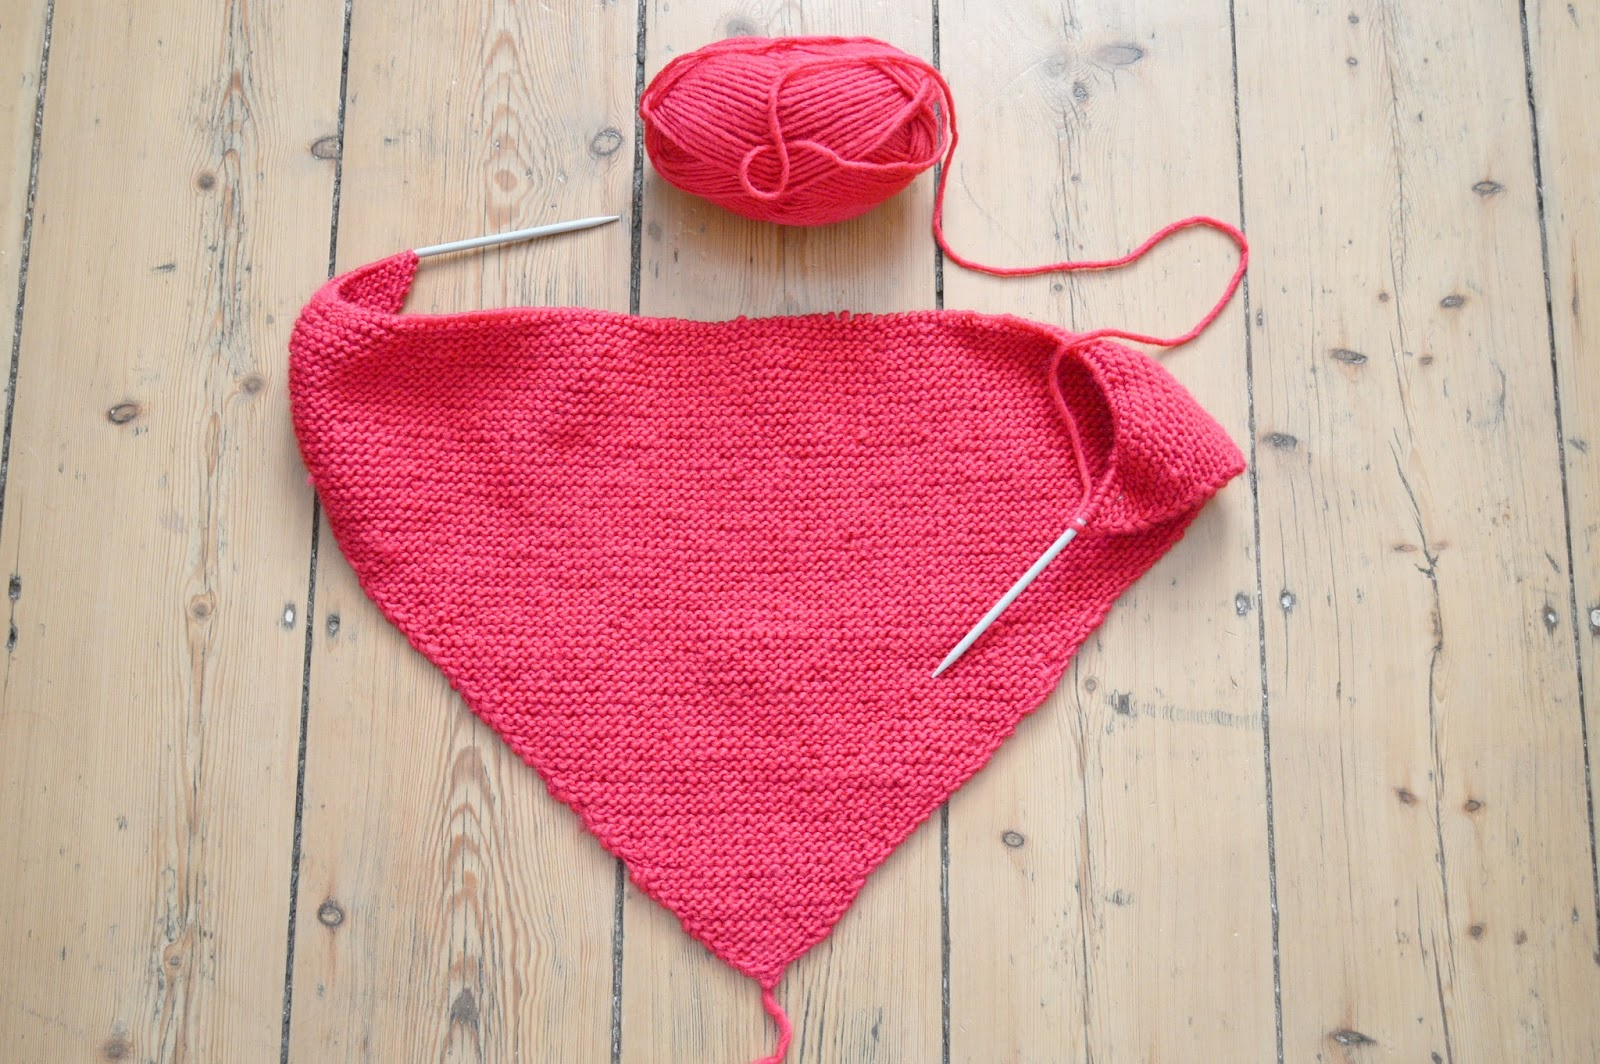 Tricot comment augmenter taille